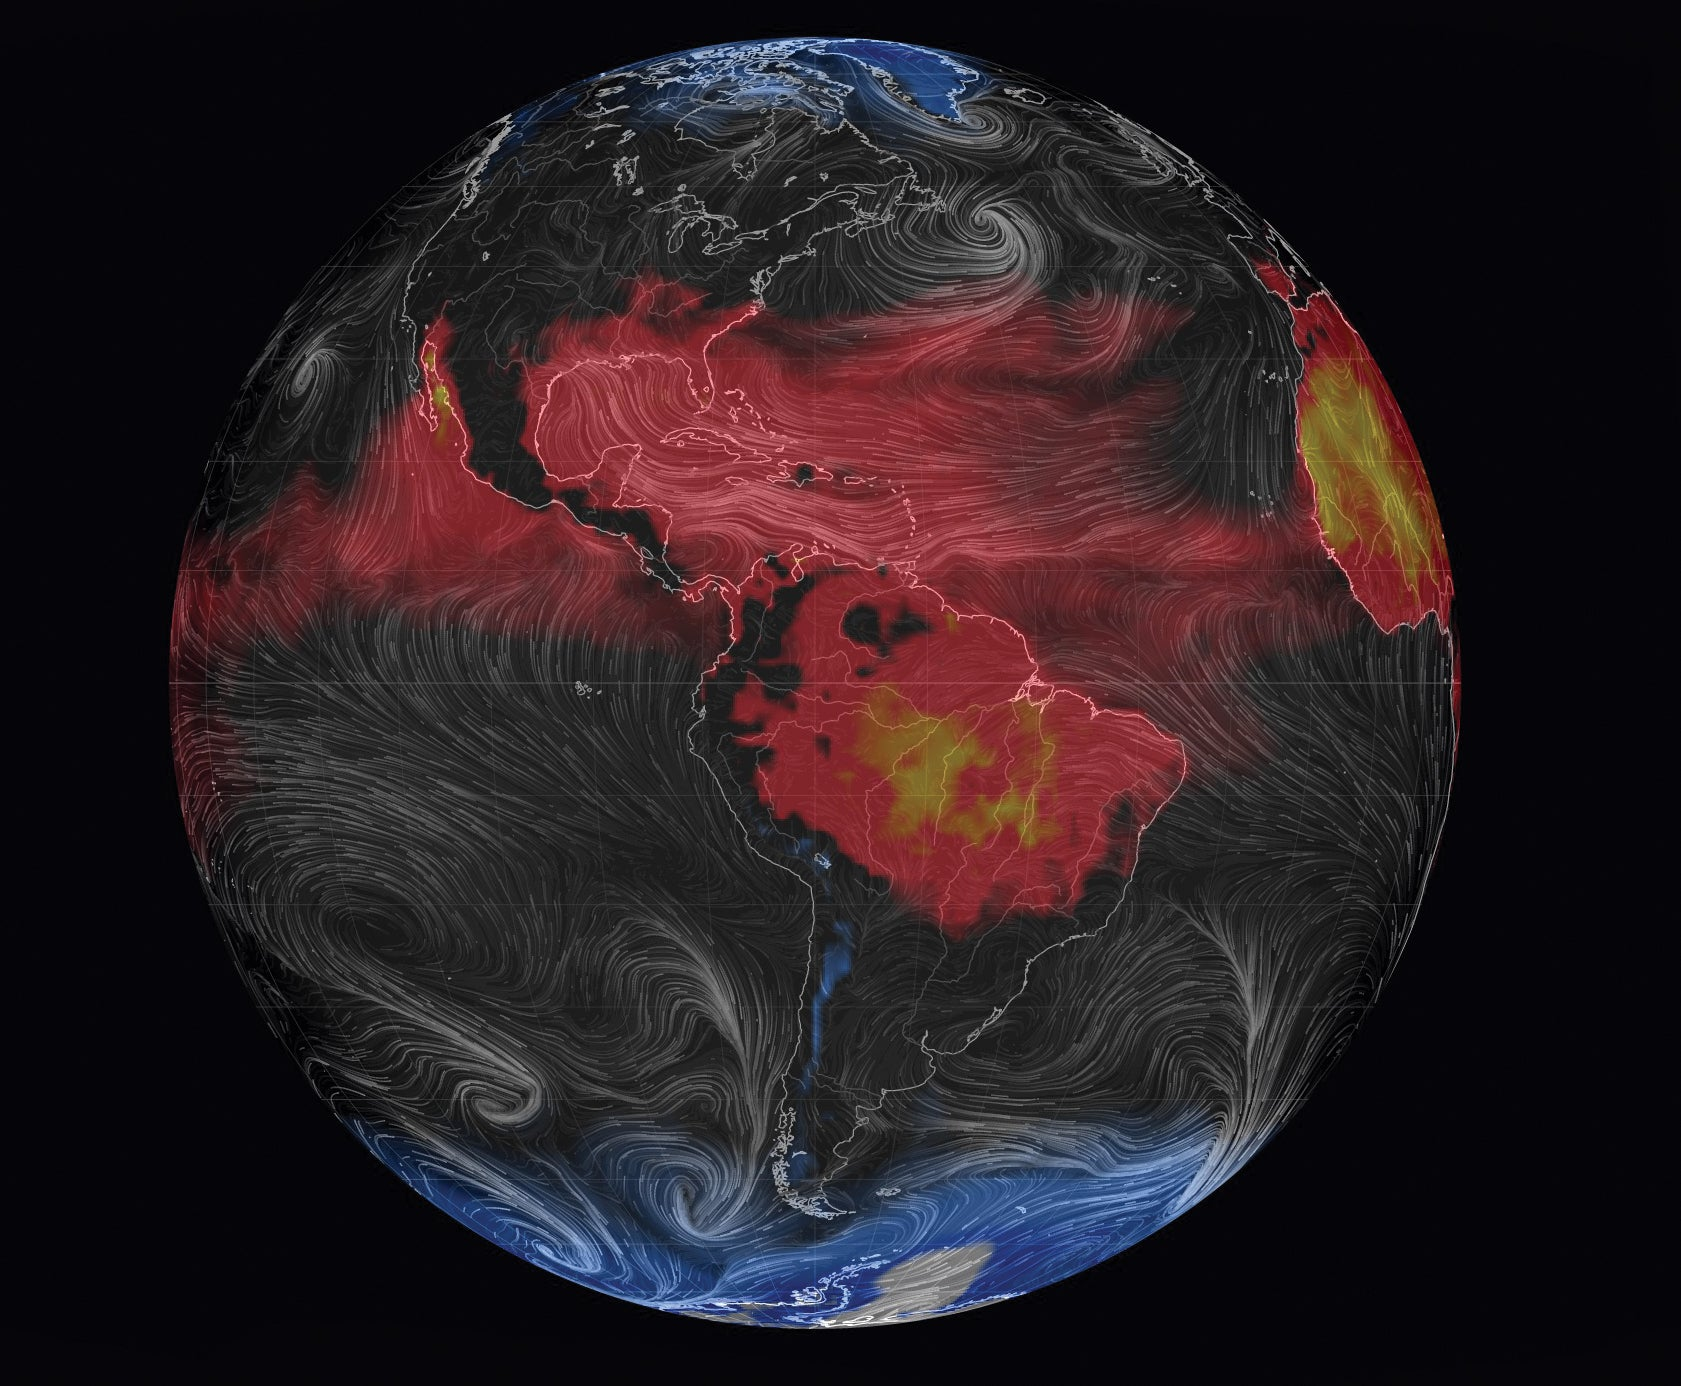 weather patterns visualized on a 3-D computer model of Earth